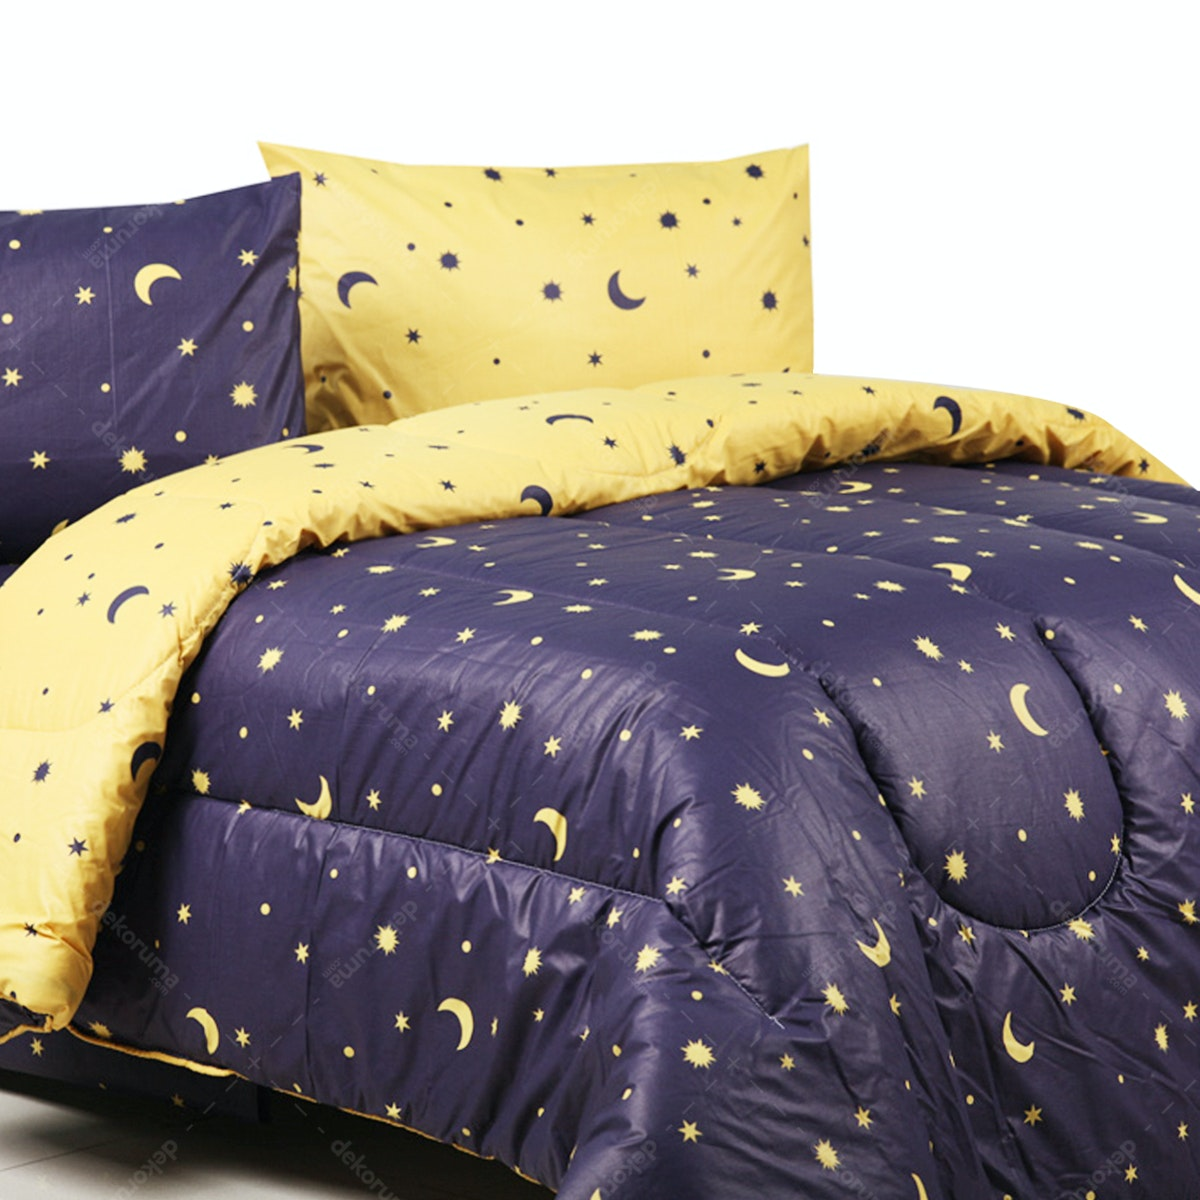 Sierra Bed Cover Dan Sprei Starry Night Navy Mix Kuning 100x200